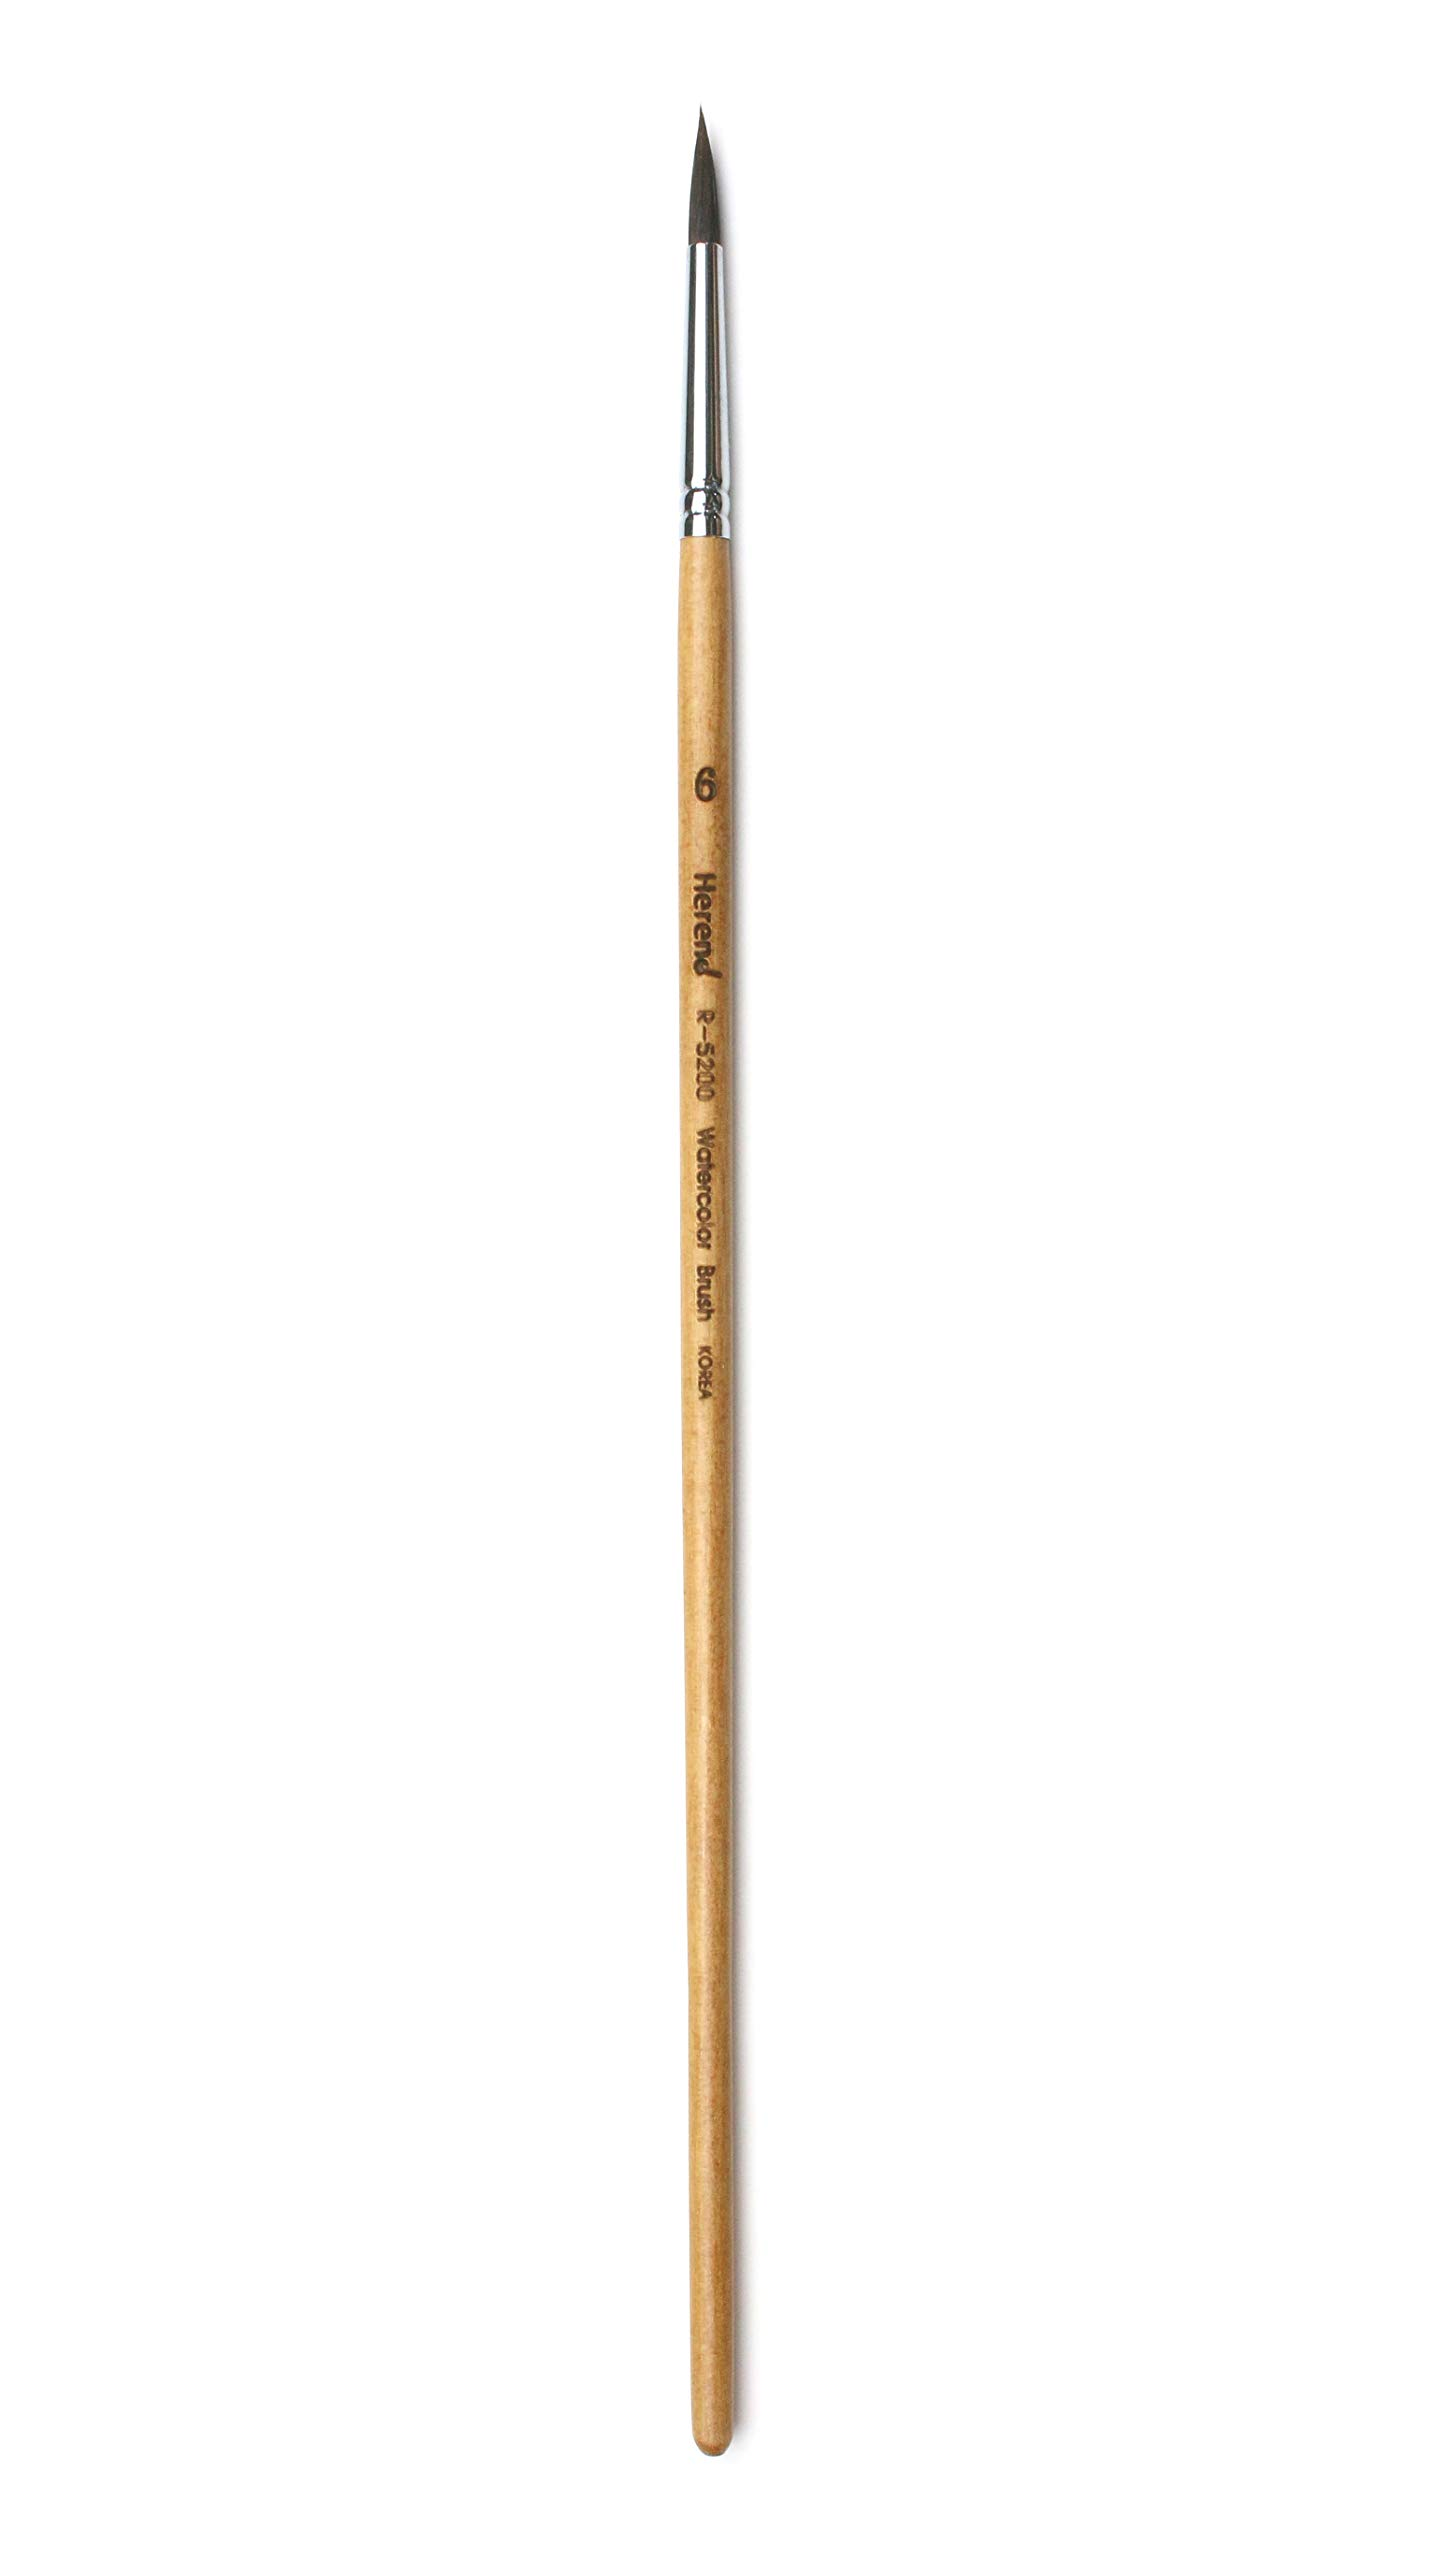 Herend Brush Series R-5200 (No.4 ~ No.20) for Watercolor with Squirrel Hair/Round Ponited Paintbrush (No.06) by Herend Brush